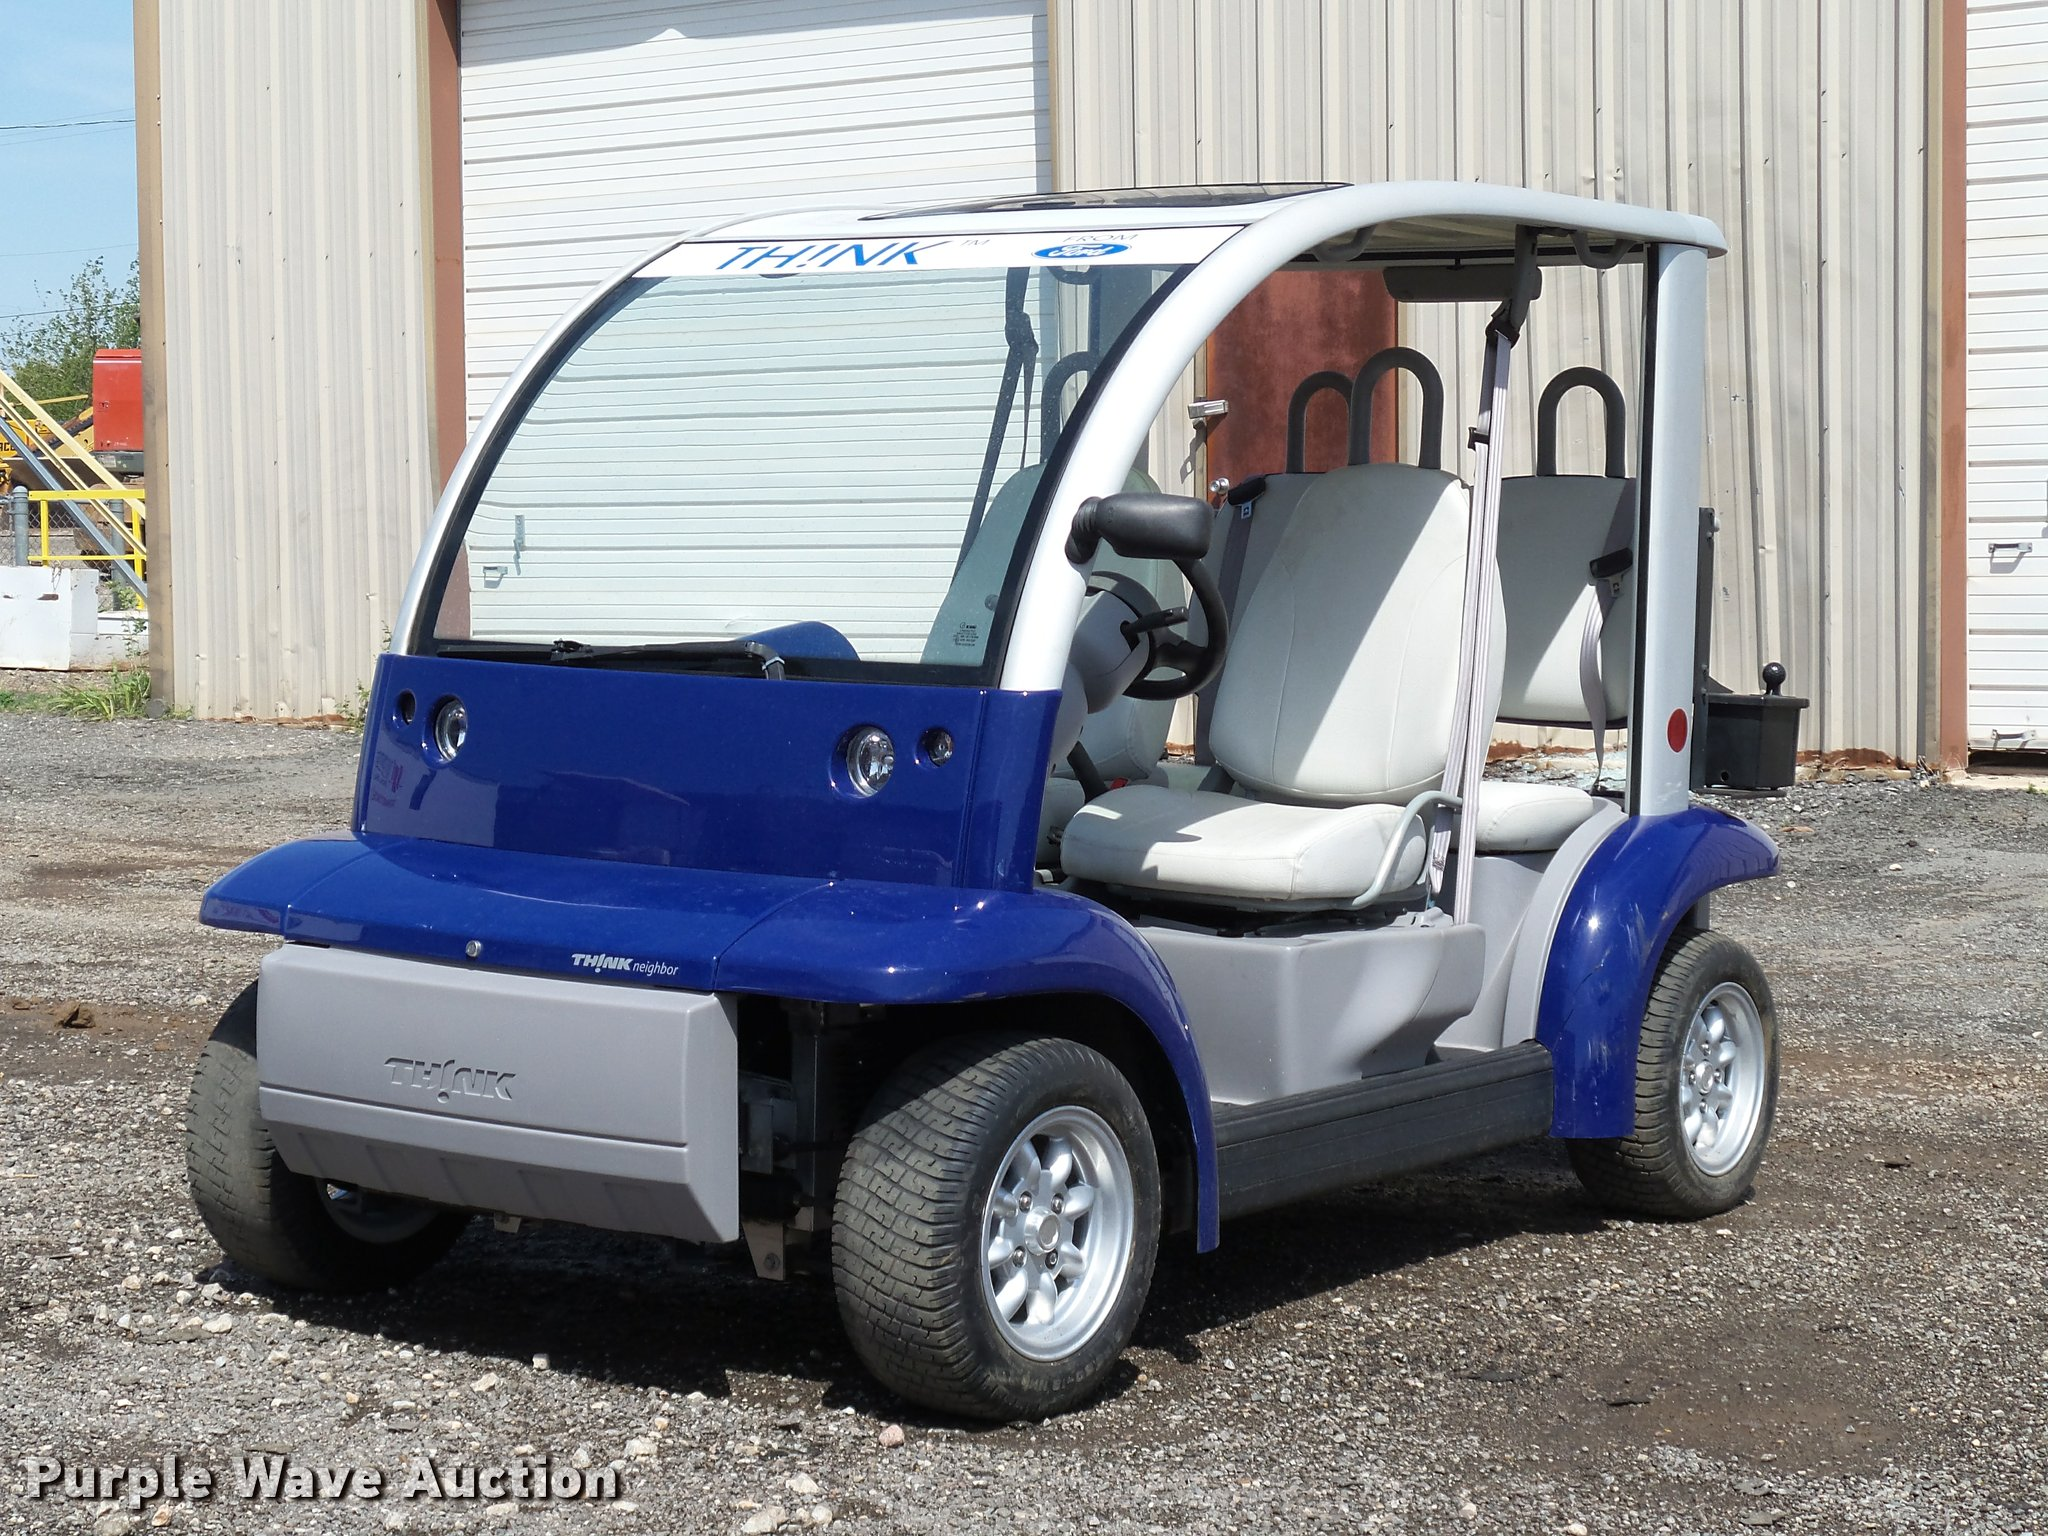 2002 Ford Think Neighbor golf cart | Item DB0181 | SOLD! May... Electric Ford Golf Cart on ford raptor golf cart, 56 ford golf cart, ford golf cart body kit, ford th!nk automobile, ford electric air compressor, 40 ford golf cart, 2002 ford golf cart, ford mustang golf cart, 32 ford golf cart, ford custom golf carts, buick golf cart, ford electric scooter, ford motor golf carts, ford golf carts florida, camaro golf cart, 1932 ford golf cart, ford solar golf cart, thunderbird golf cart, new ford truck golf cart, ford golf cart bodies,